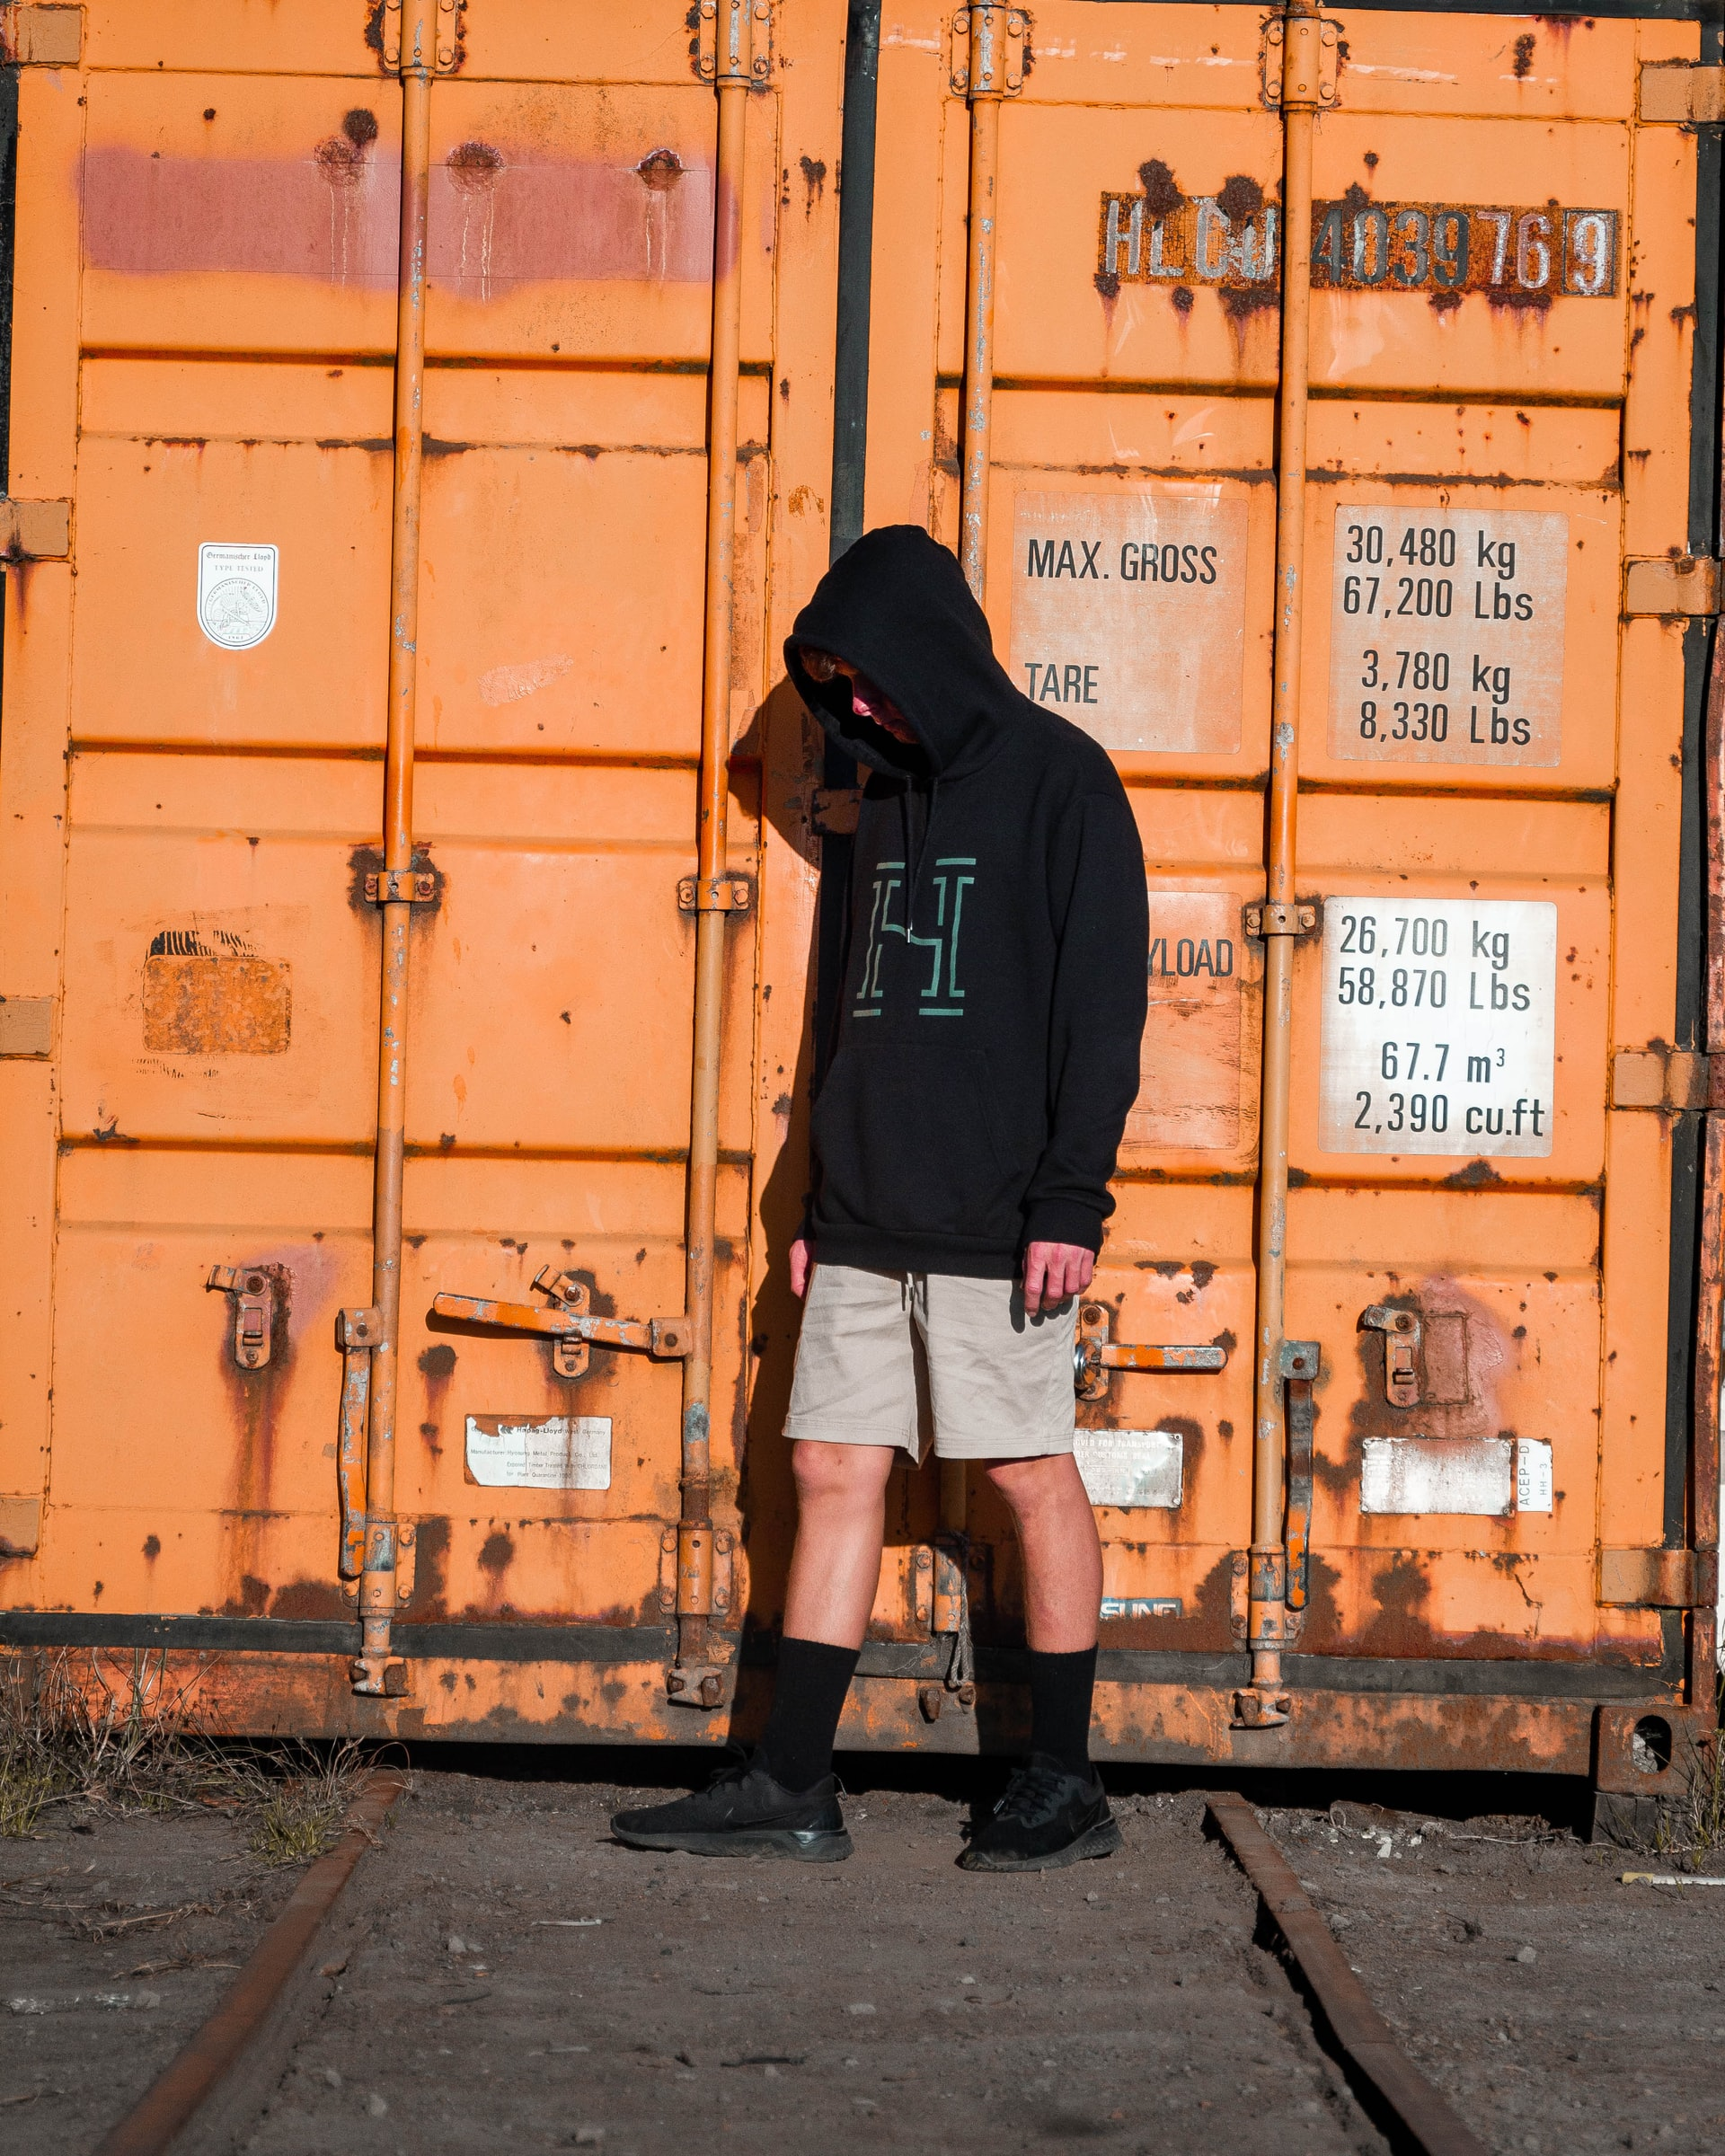 A man near a shipping container